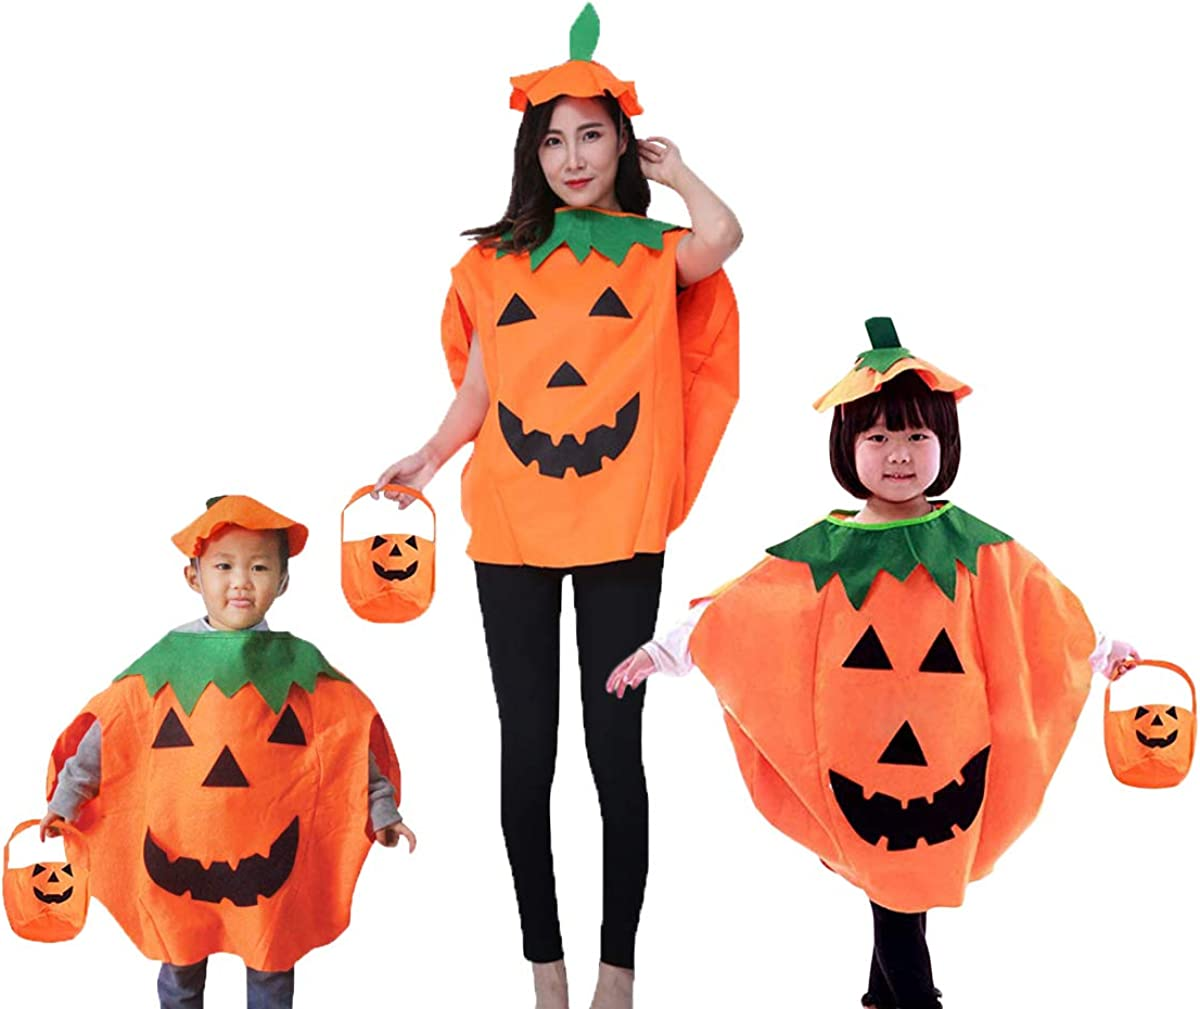 OFFicial site QBSM Halloween Pumpkin Costume Suit Popular shop is the lowest price challenge B for Clothes Clothing Party